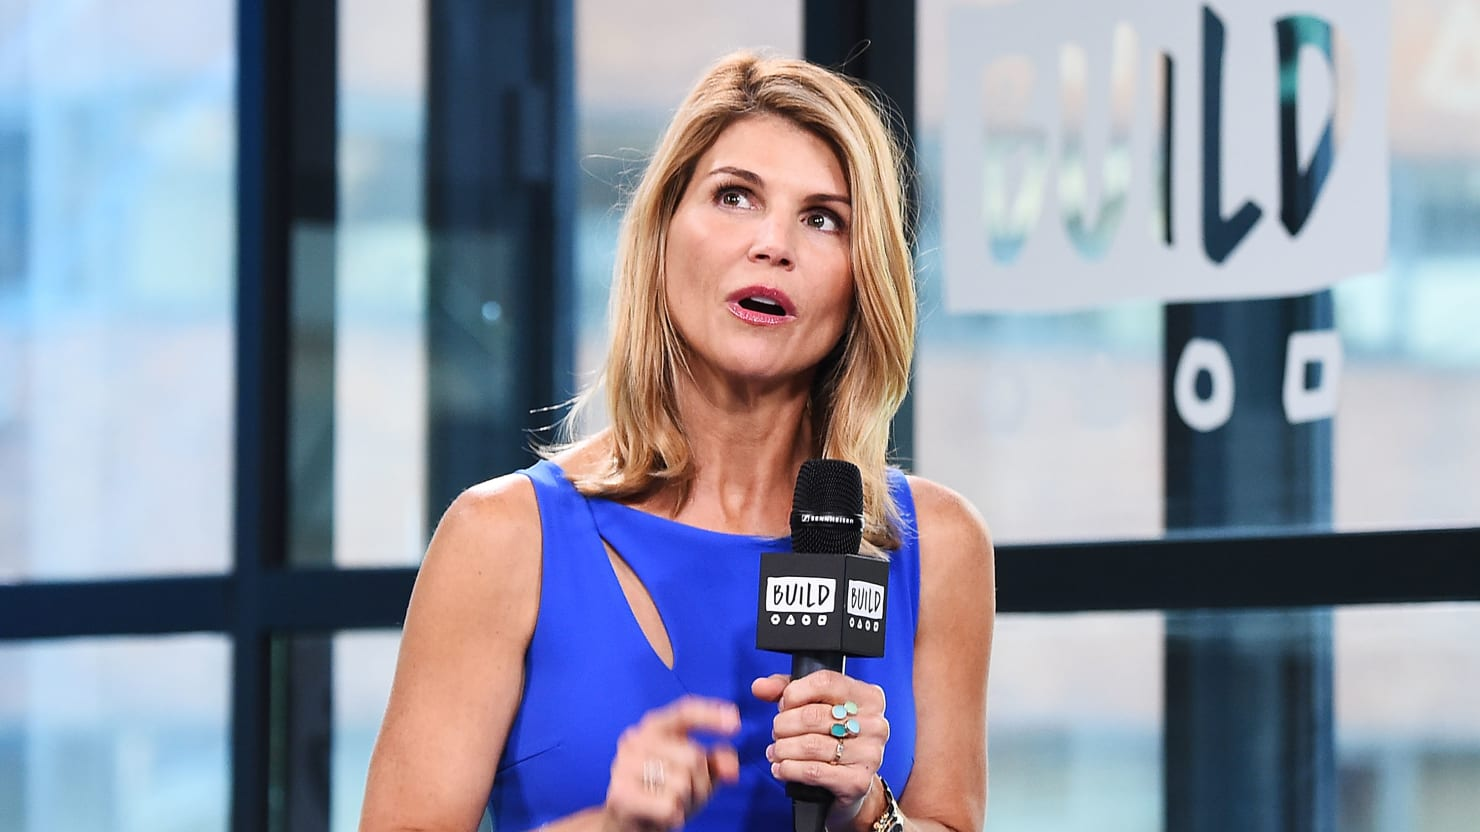 Lori Loughlin 'Didn't Realize What They Were Doing Was Illegal' in College Cheating Scheme: Report